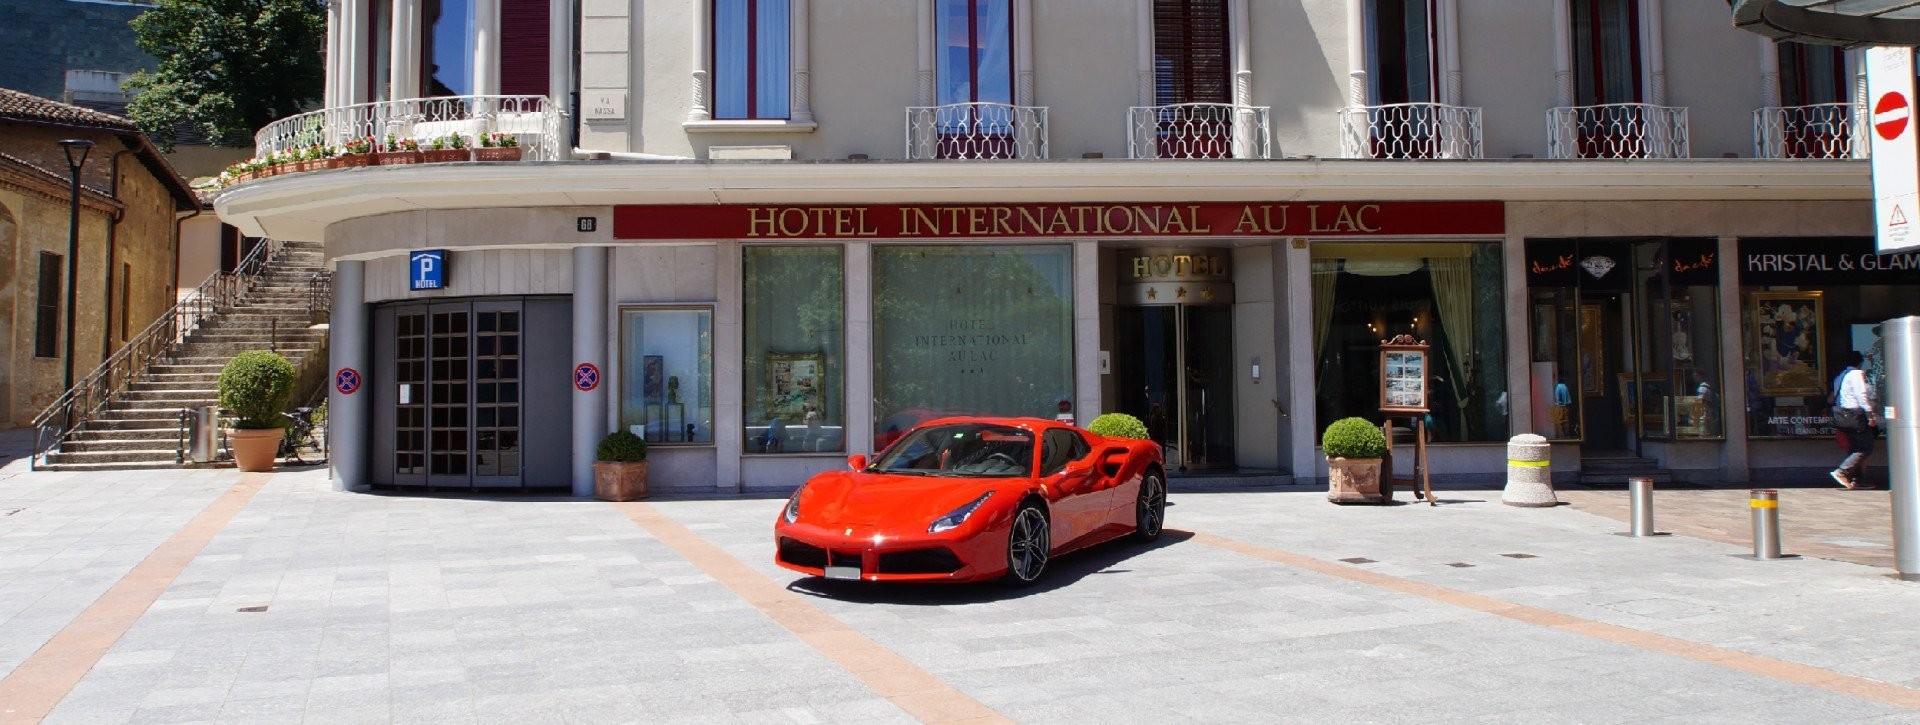 Ferrari in front of Hotel International au Lac Lugano